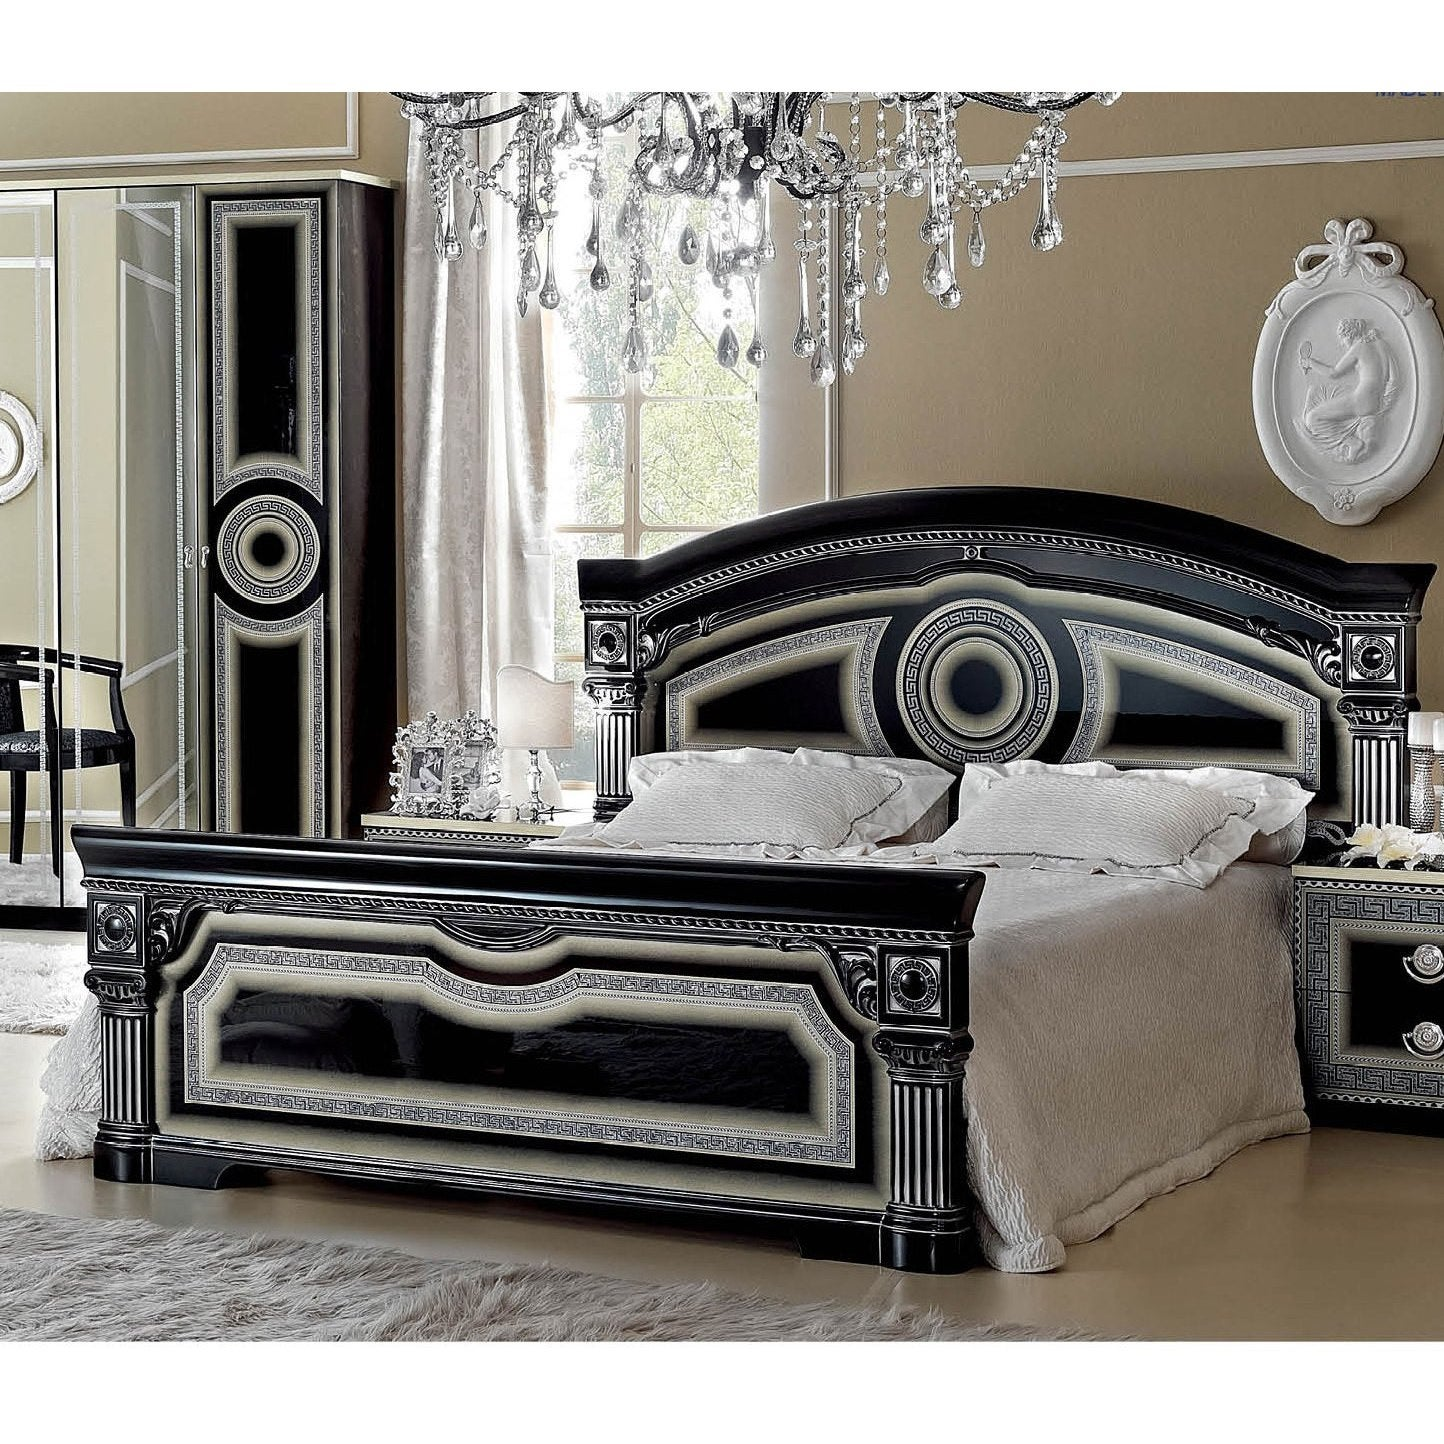 Luca Home Black/Silver Bed - Free Shipping Today - Overstock - 17326942